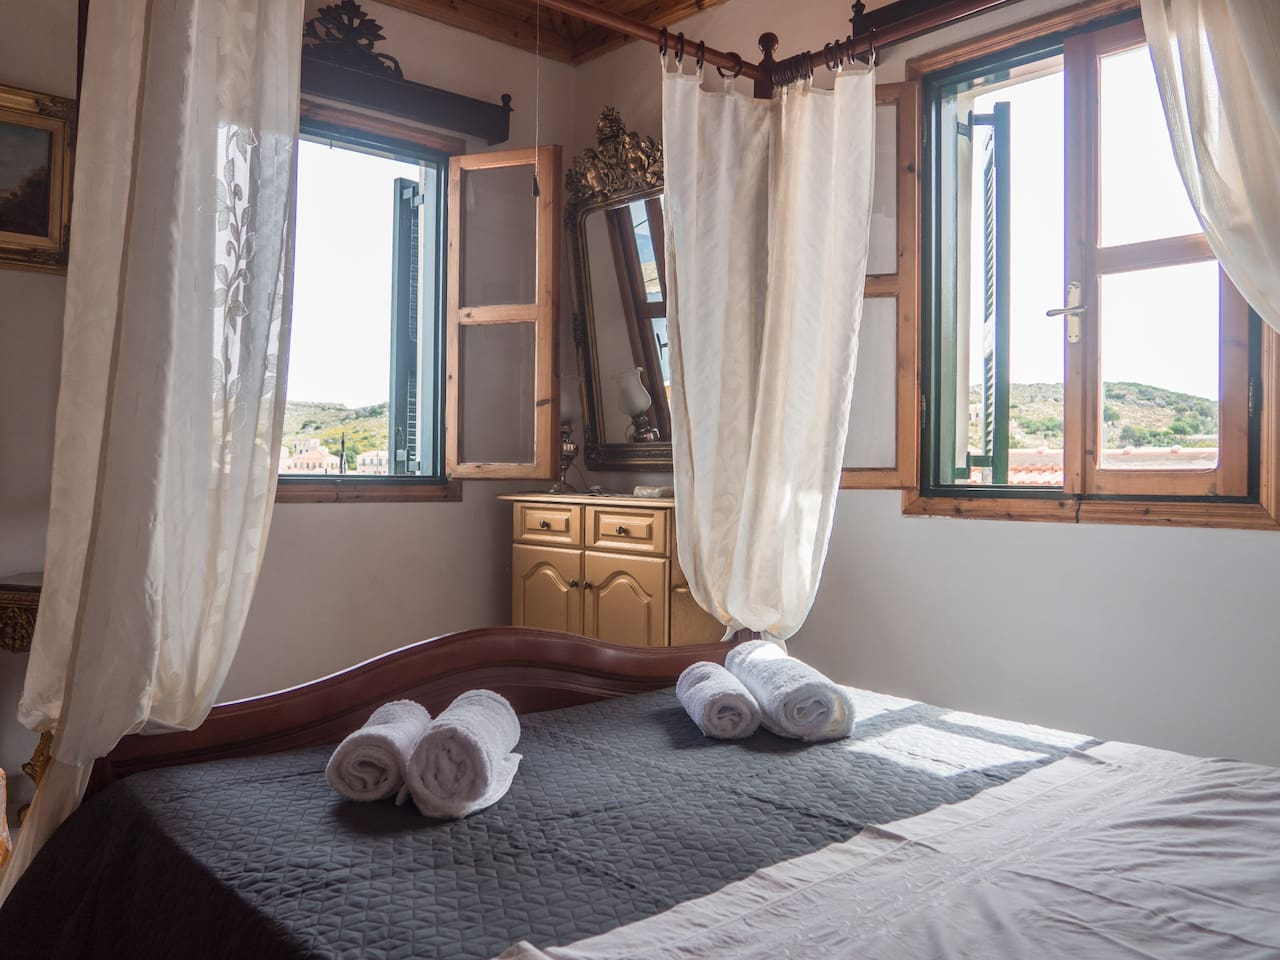 Bedroom with a traditional double bed.